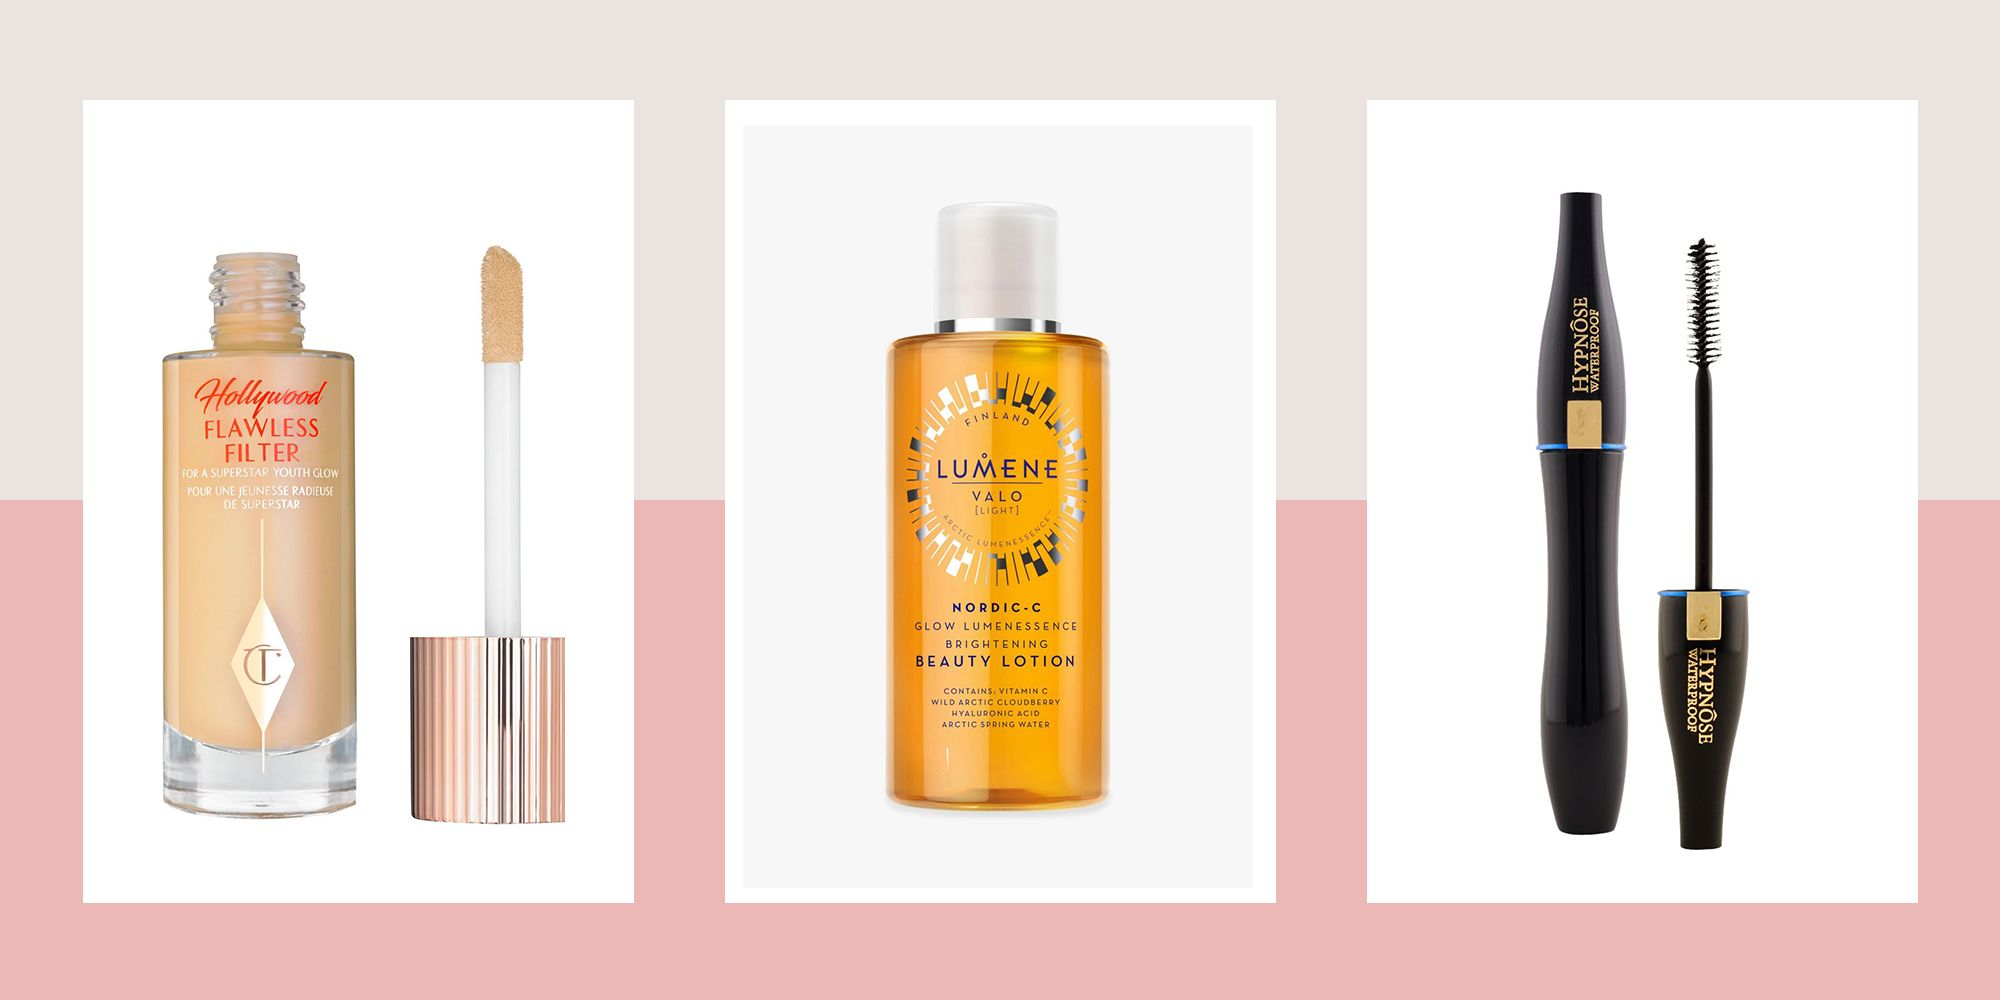 11 beauty essentials from John Lewis you need for party season